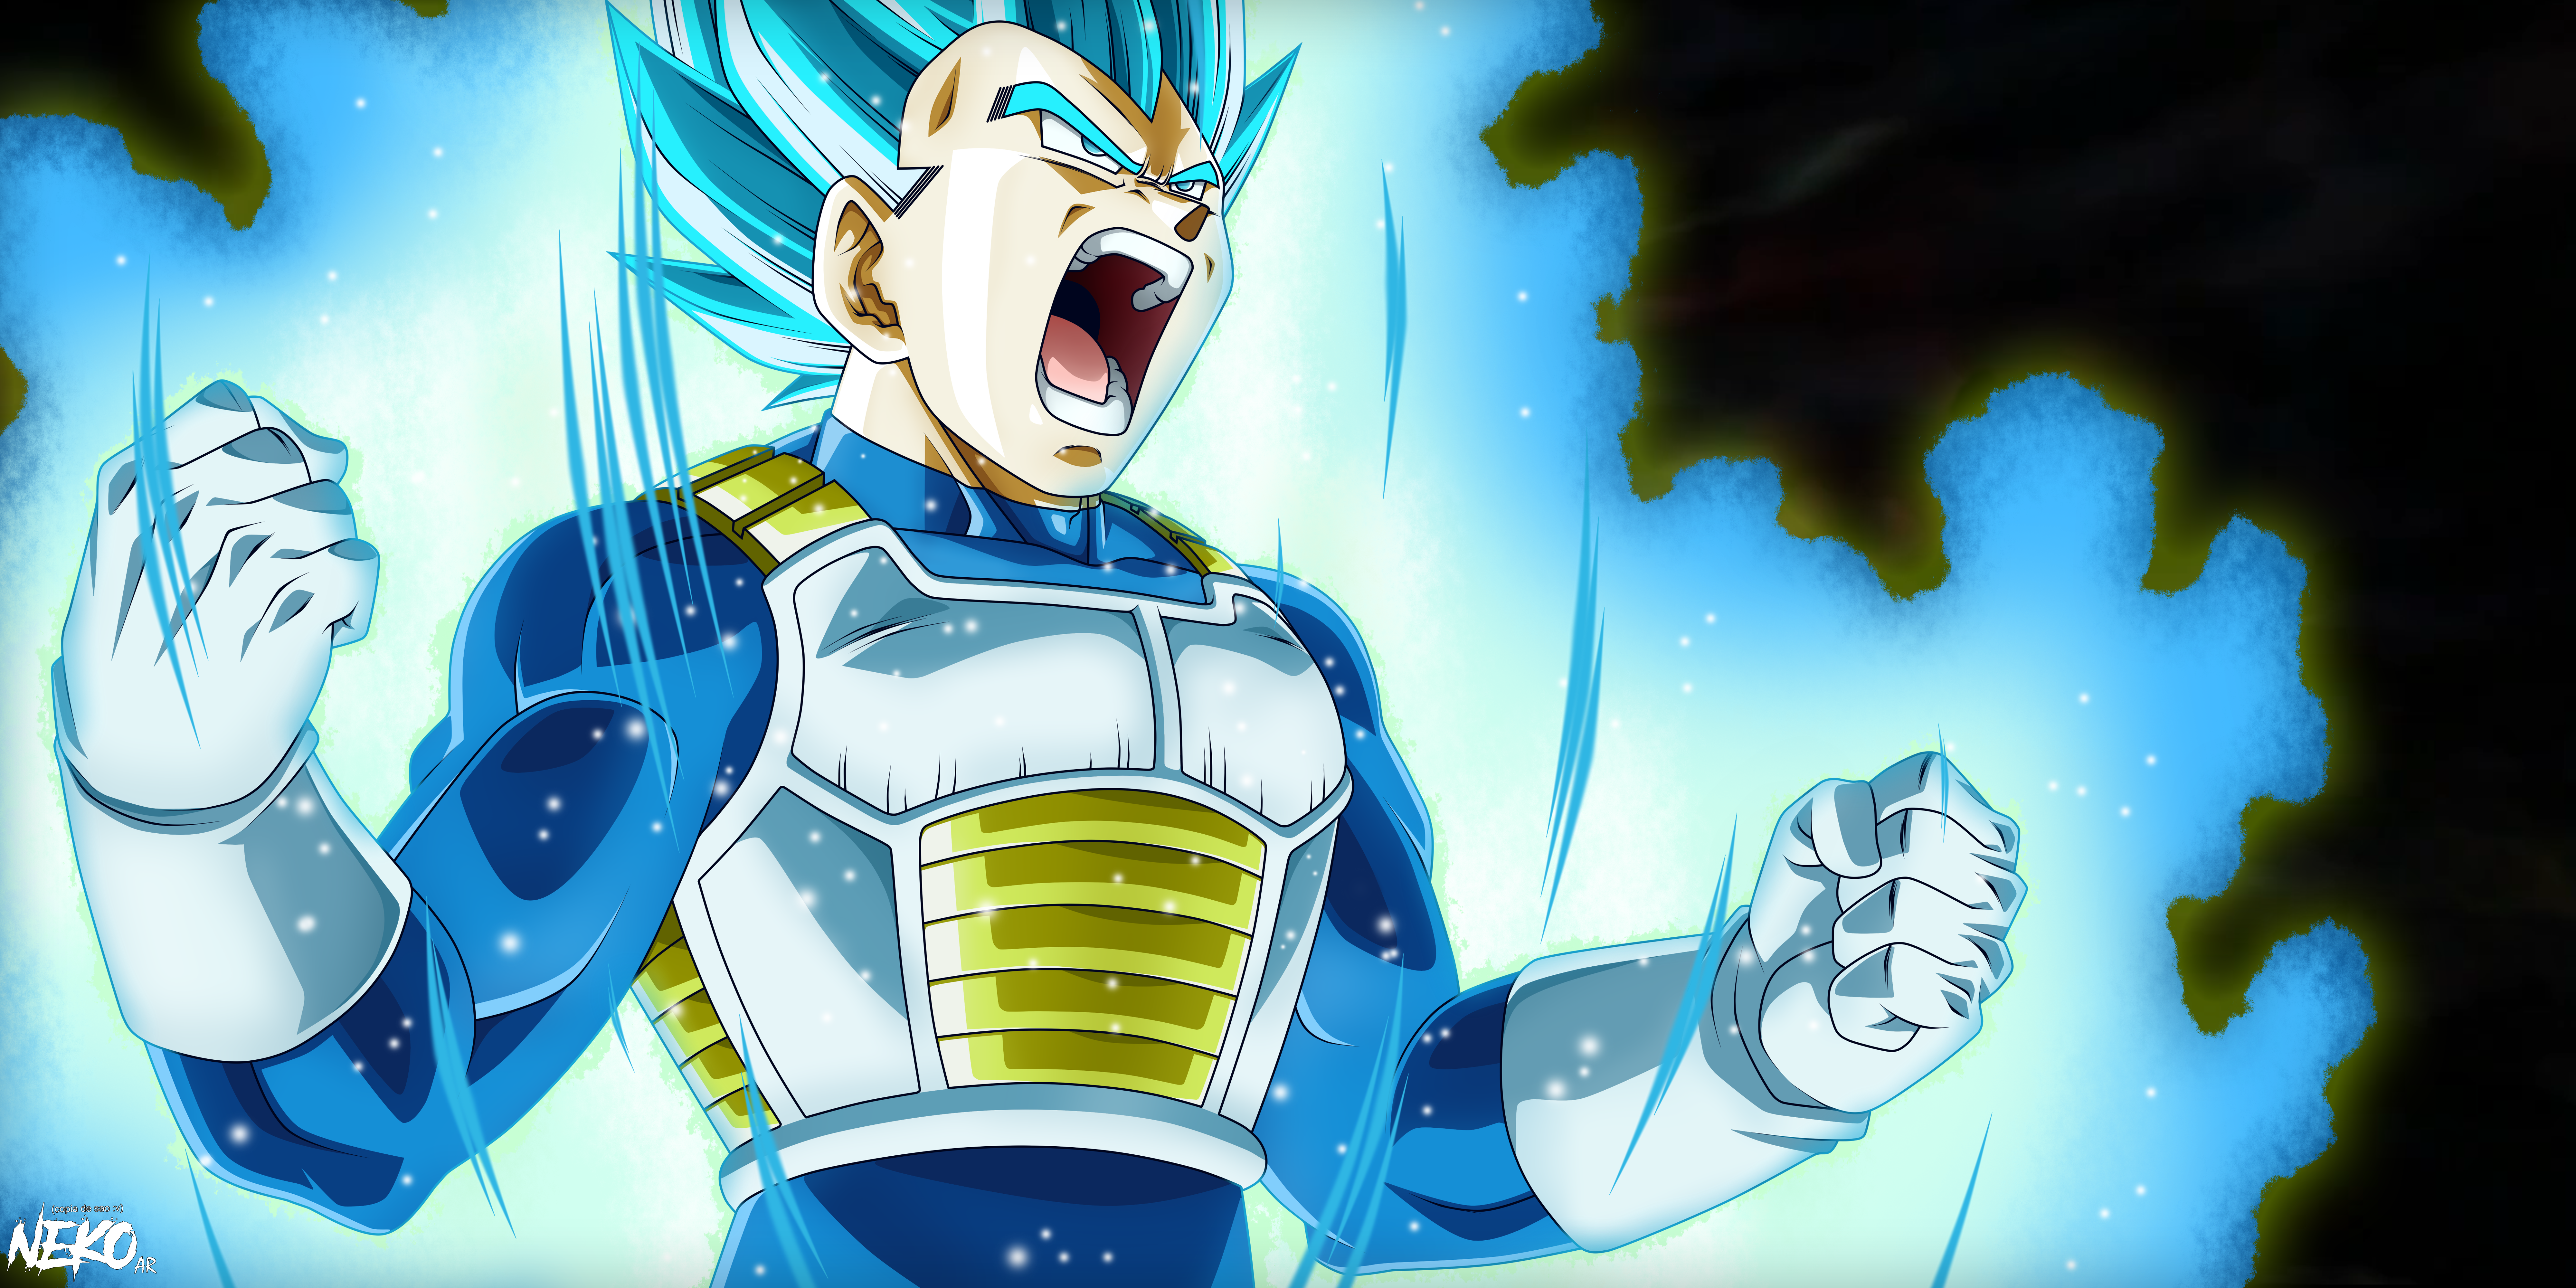 102 4k ultra hd vegeta (dragon ball) wallpapers | background images